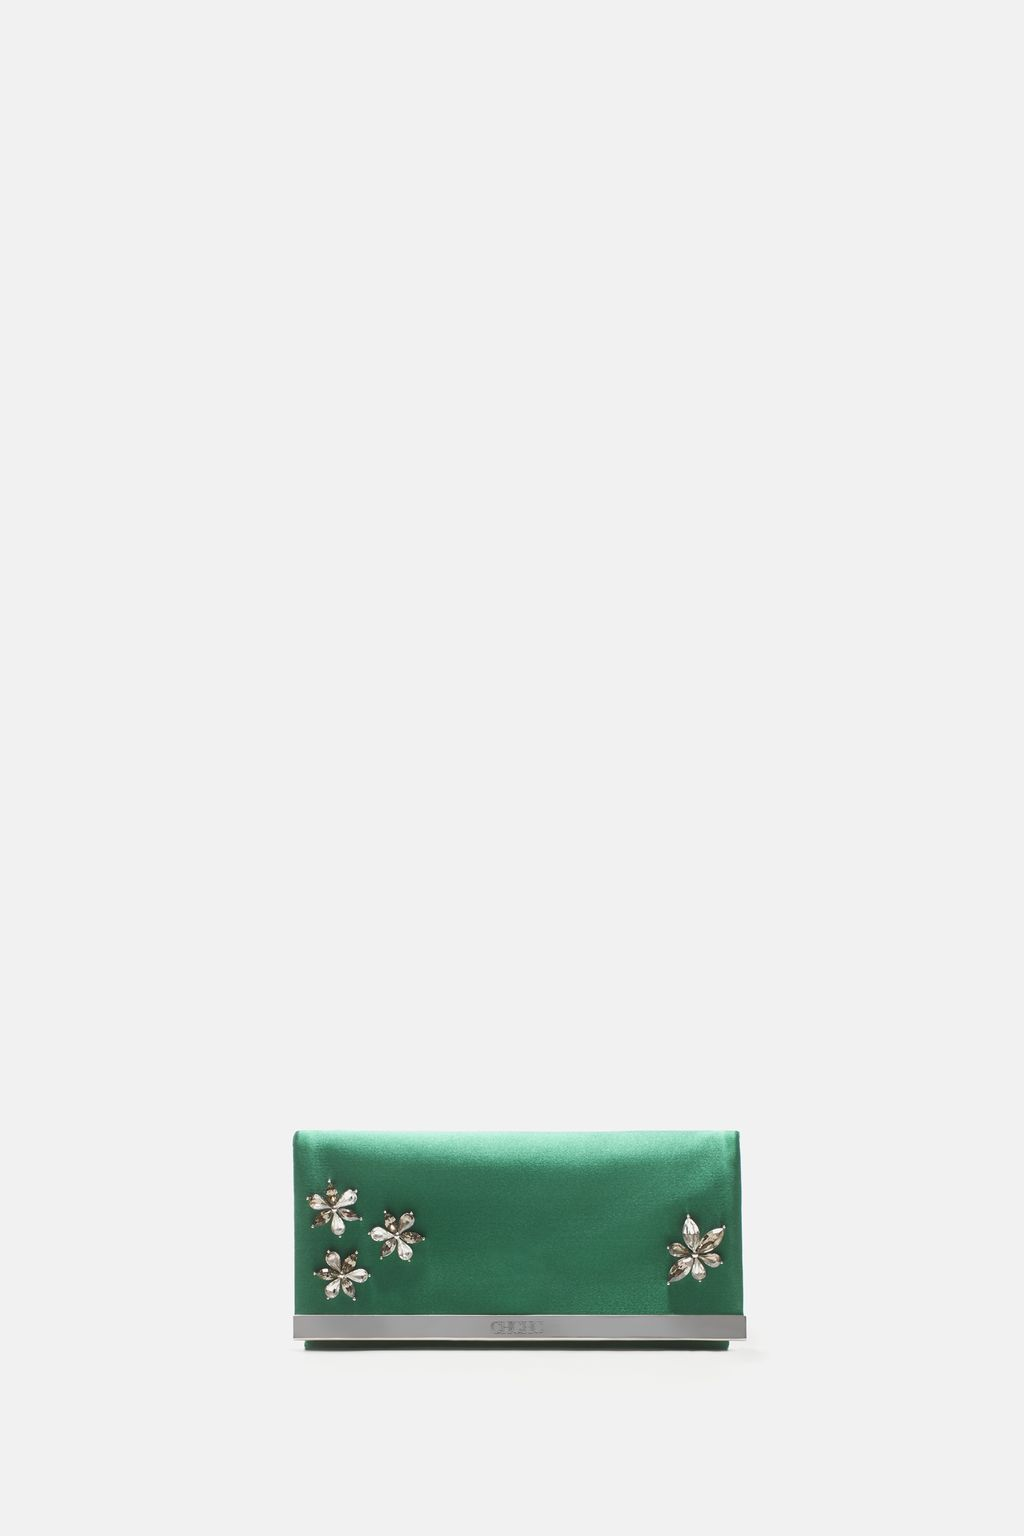 Camelot   Small clutch